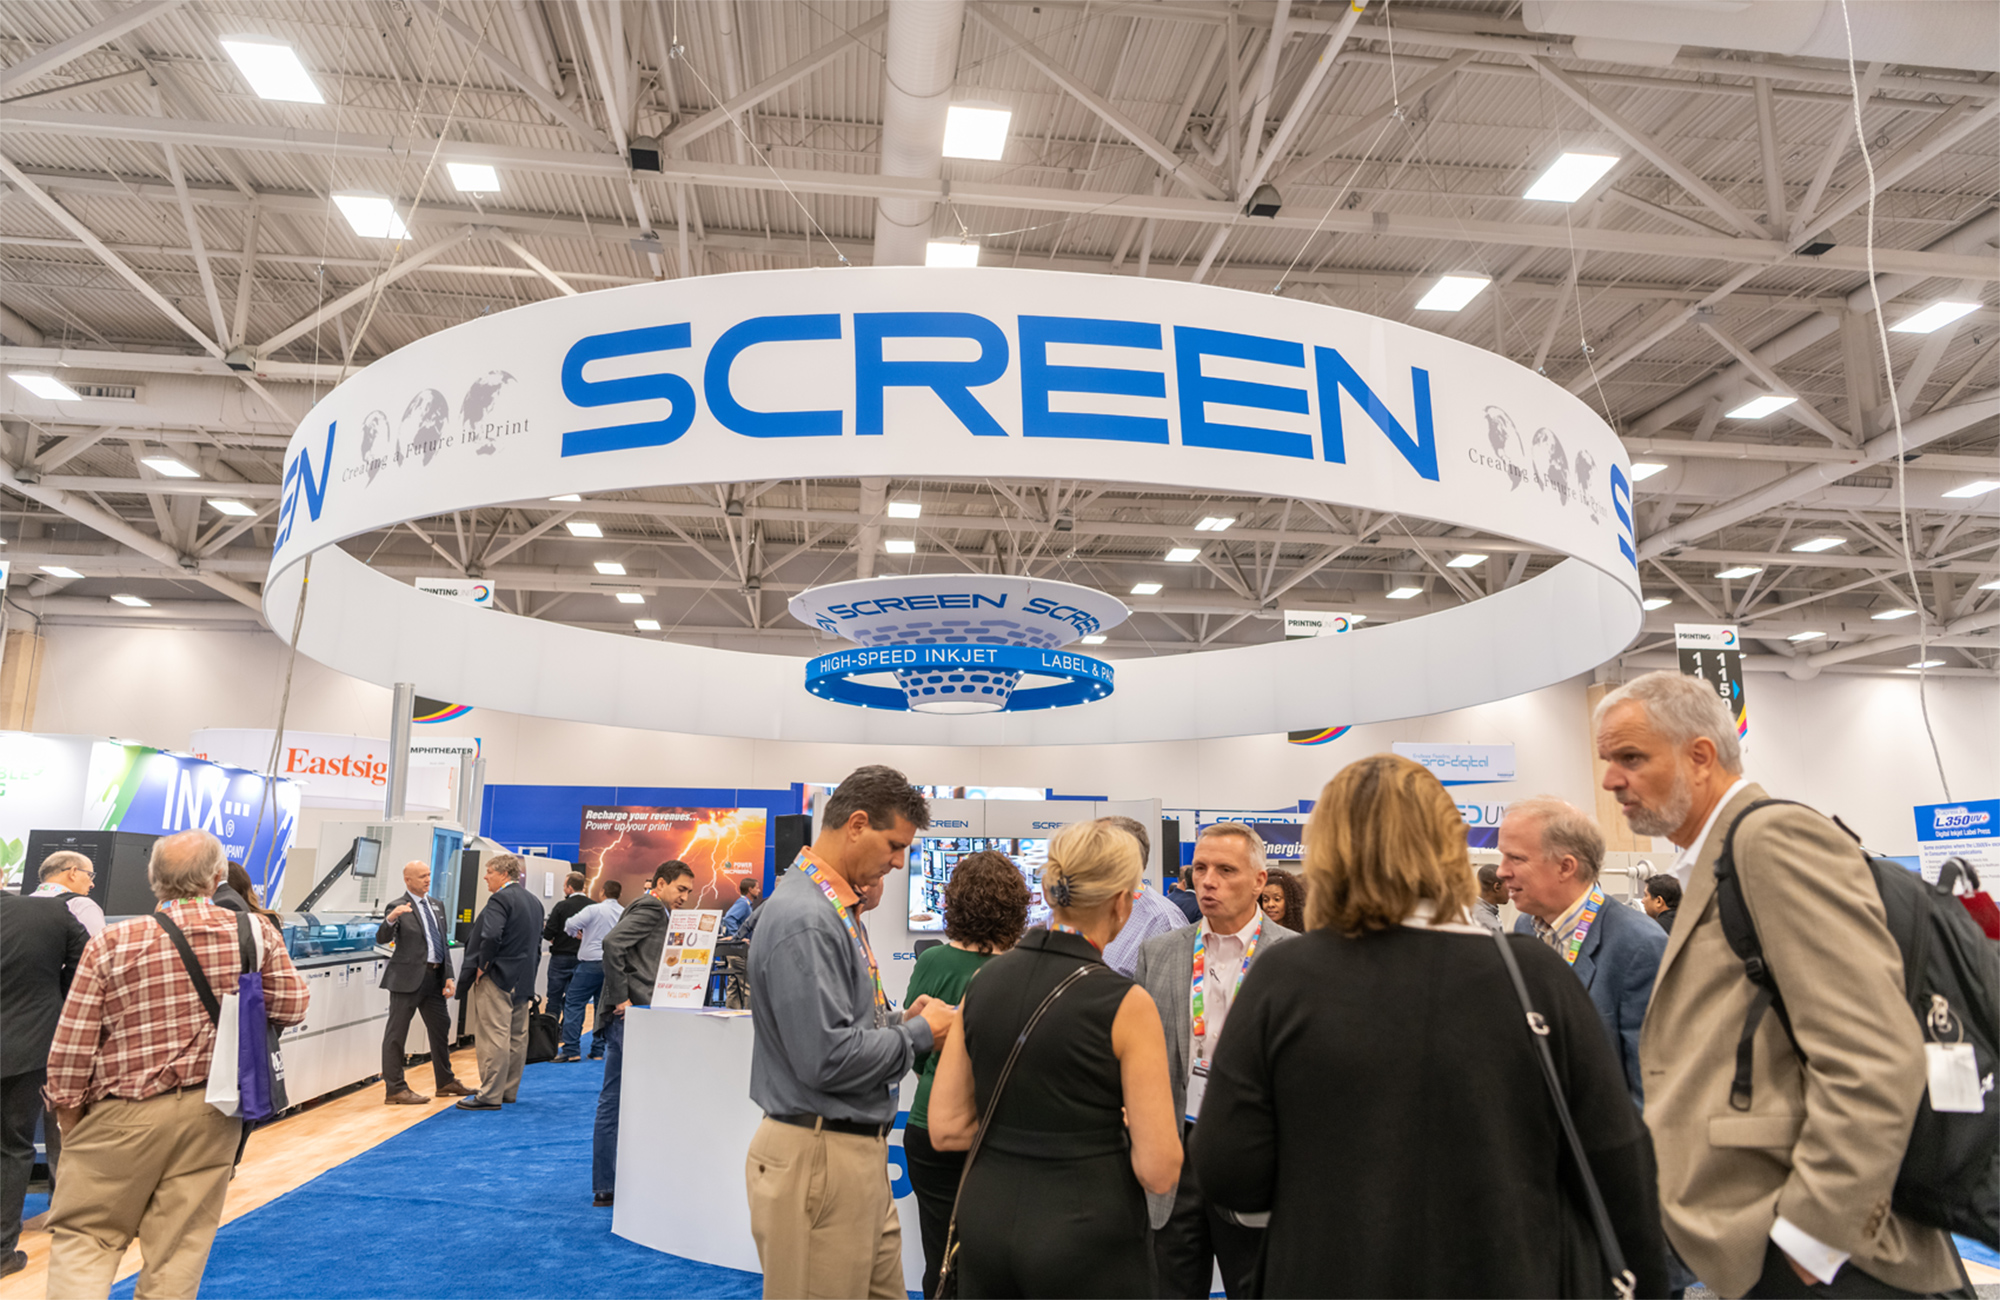 1500, 1501, 1502, 1503… SCREEN Truepress Jet520 inkjet engines and counting, all celebrated at the inaugural Printing United show